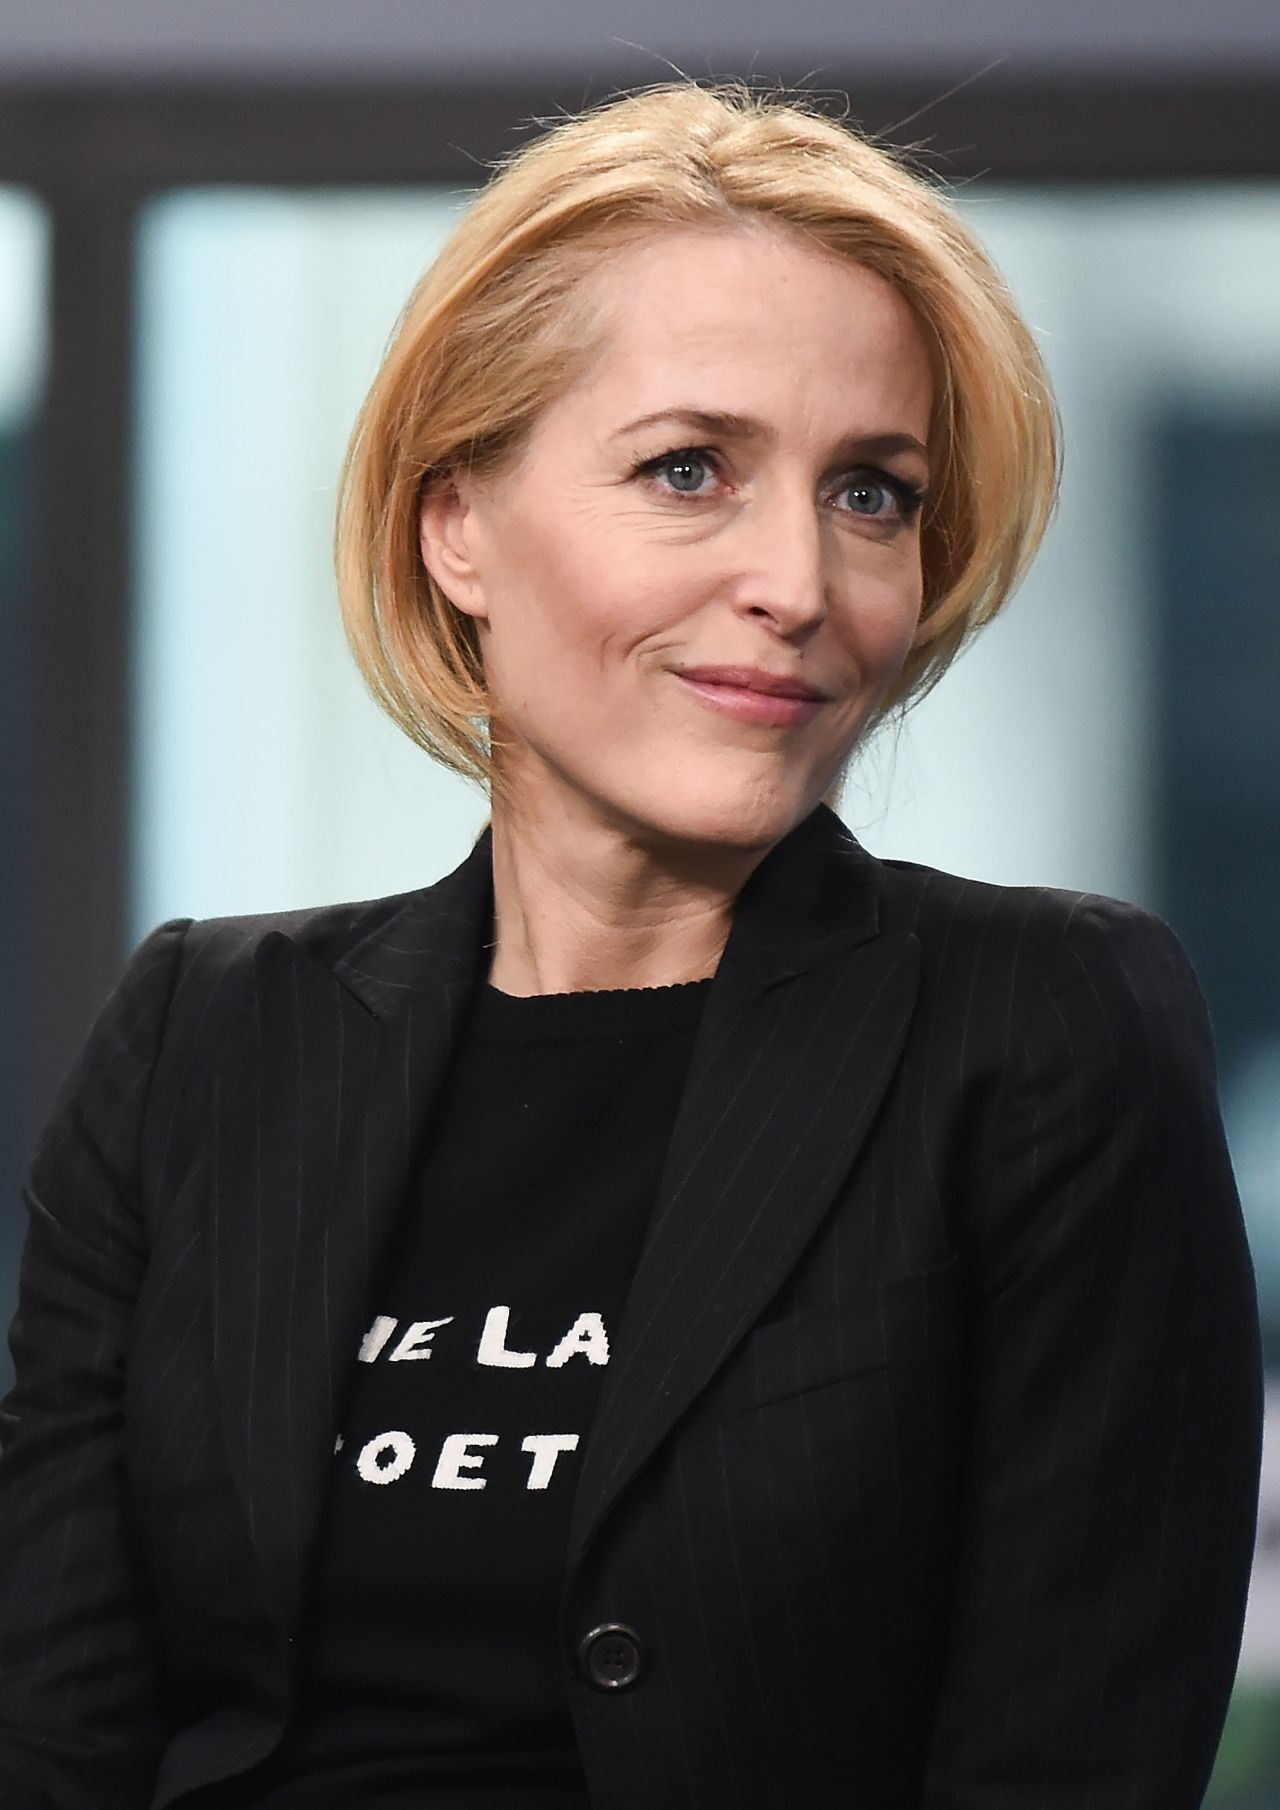 Gillian Anderson At Aol Build Show Studio 3 13 2017